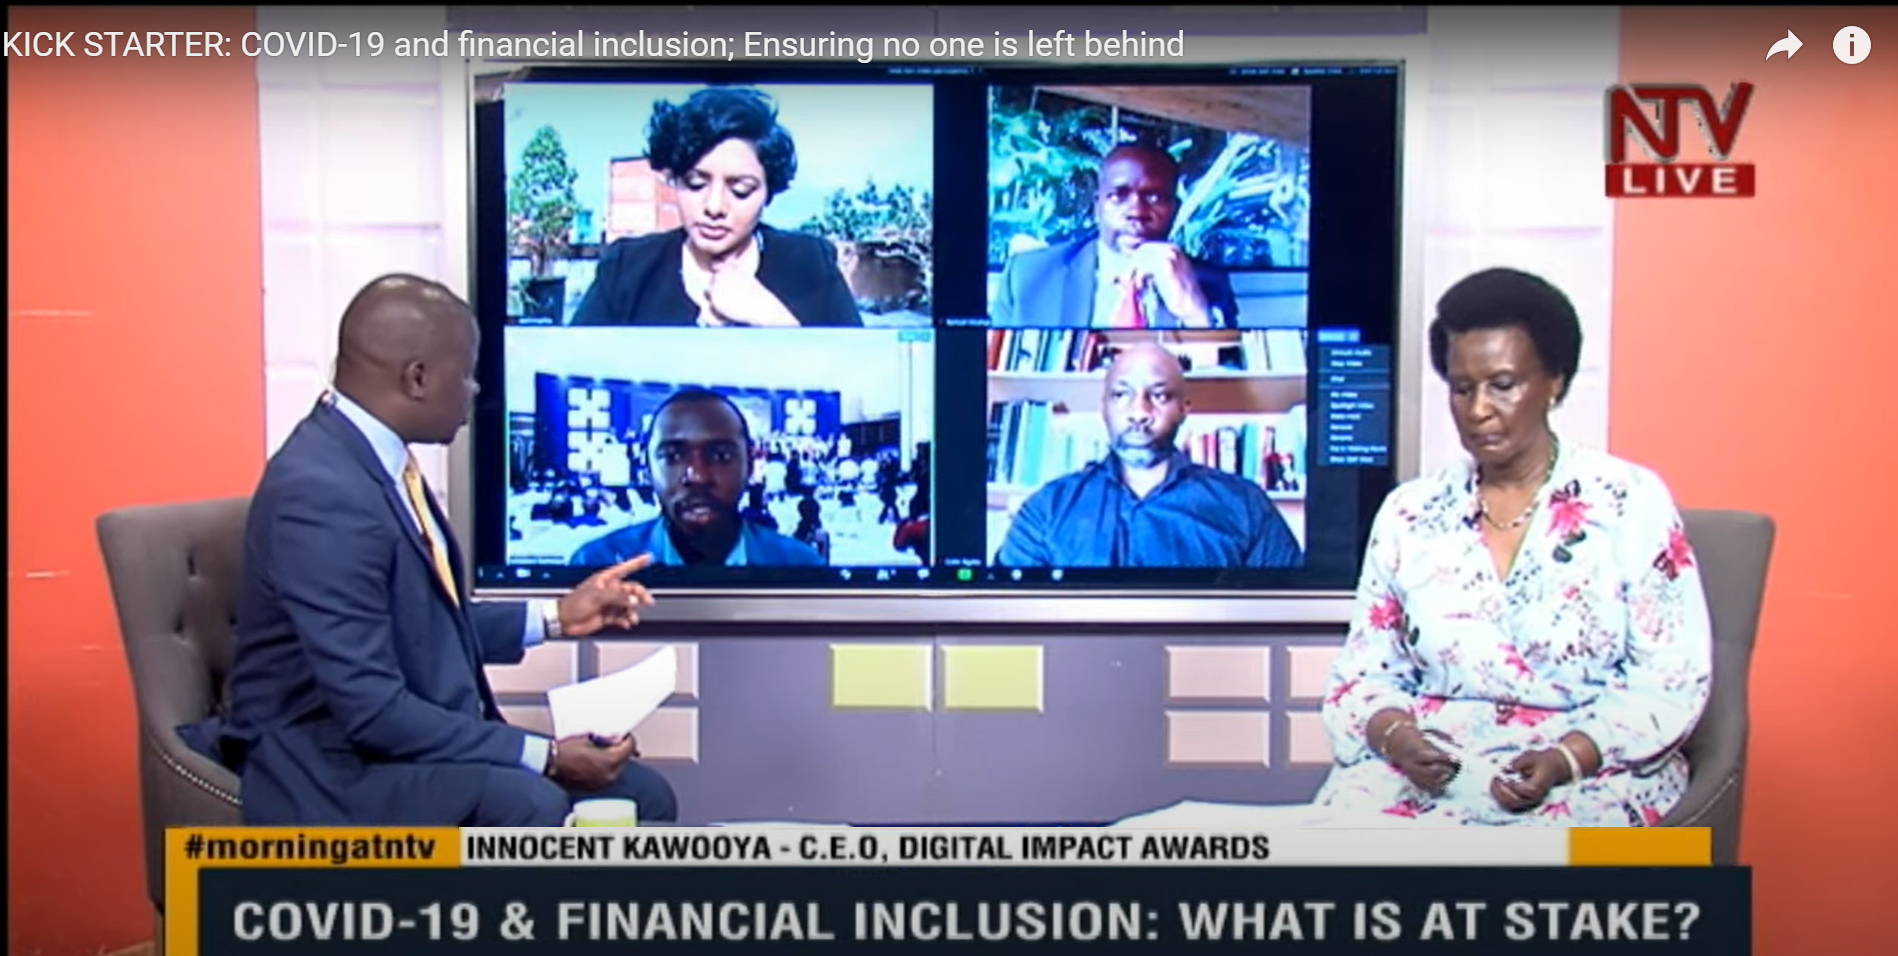 COVID-19 & Financial Inclusion: What is at stake? #MorningAtNTV